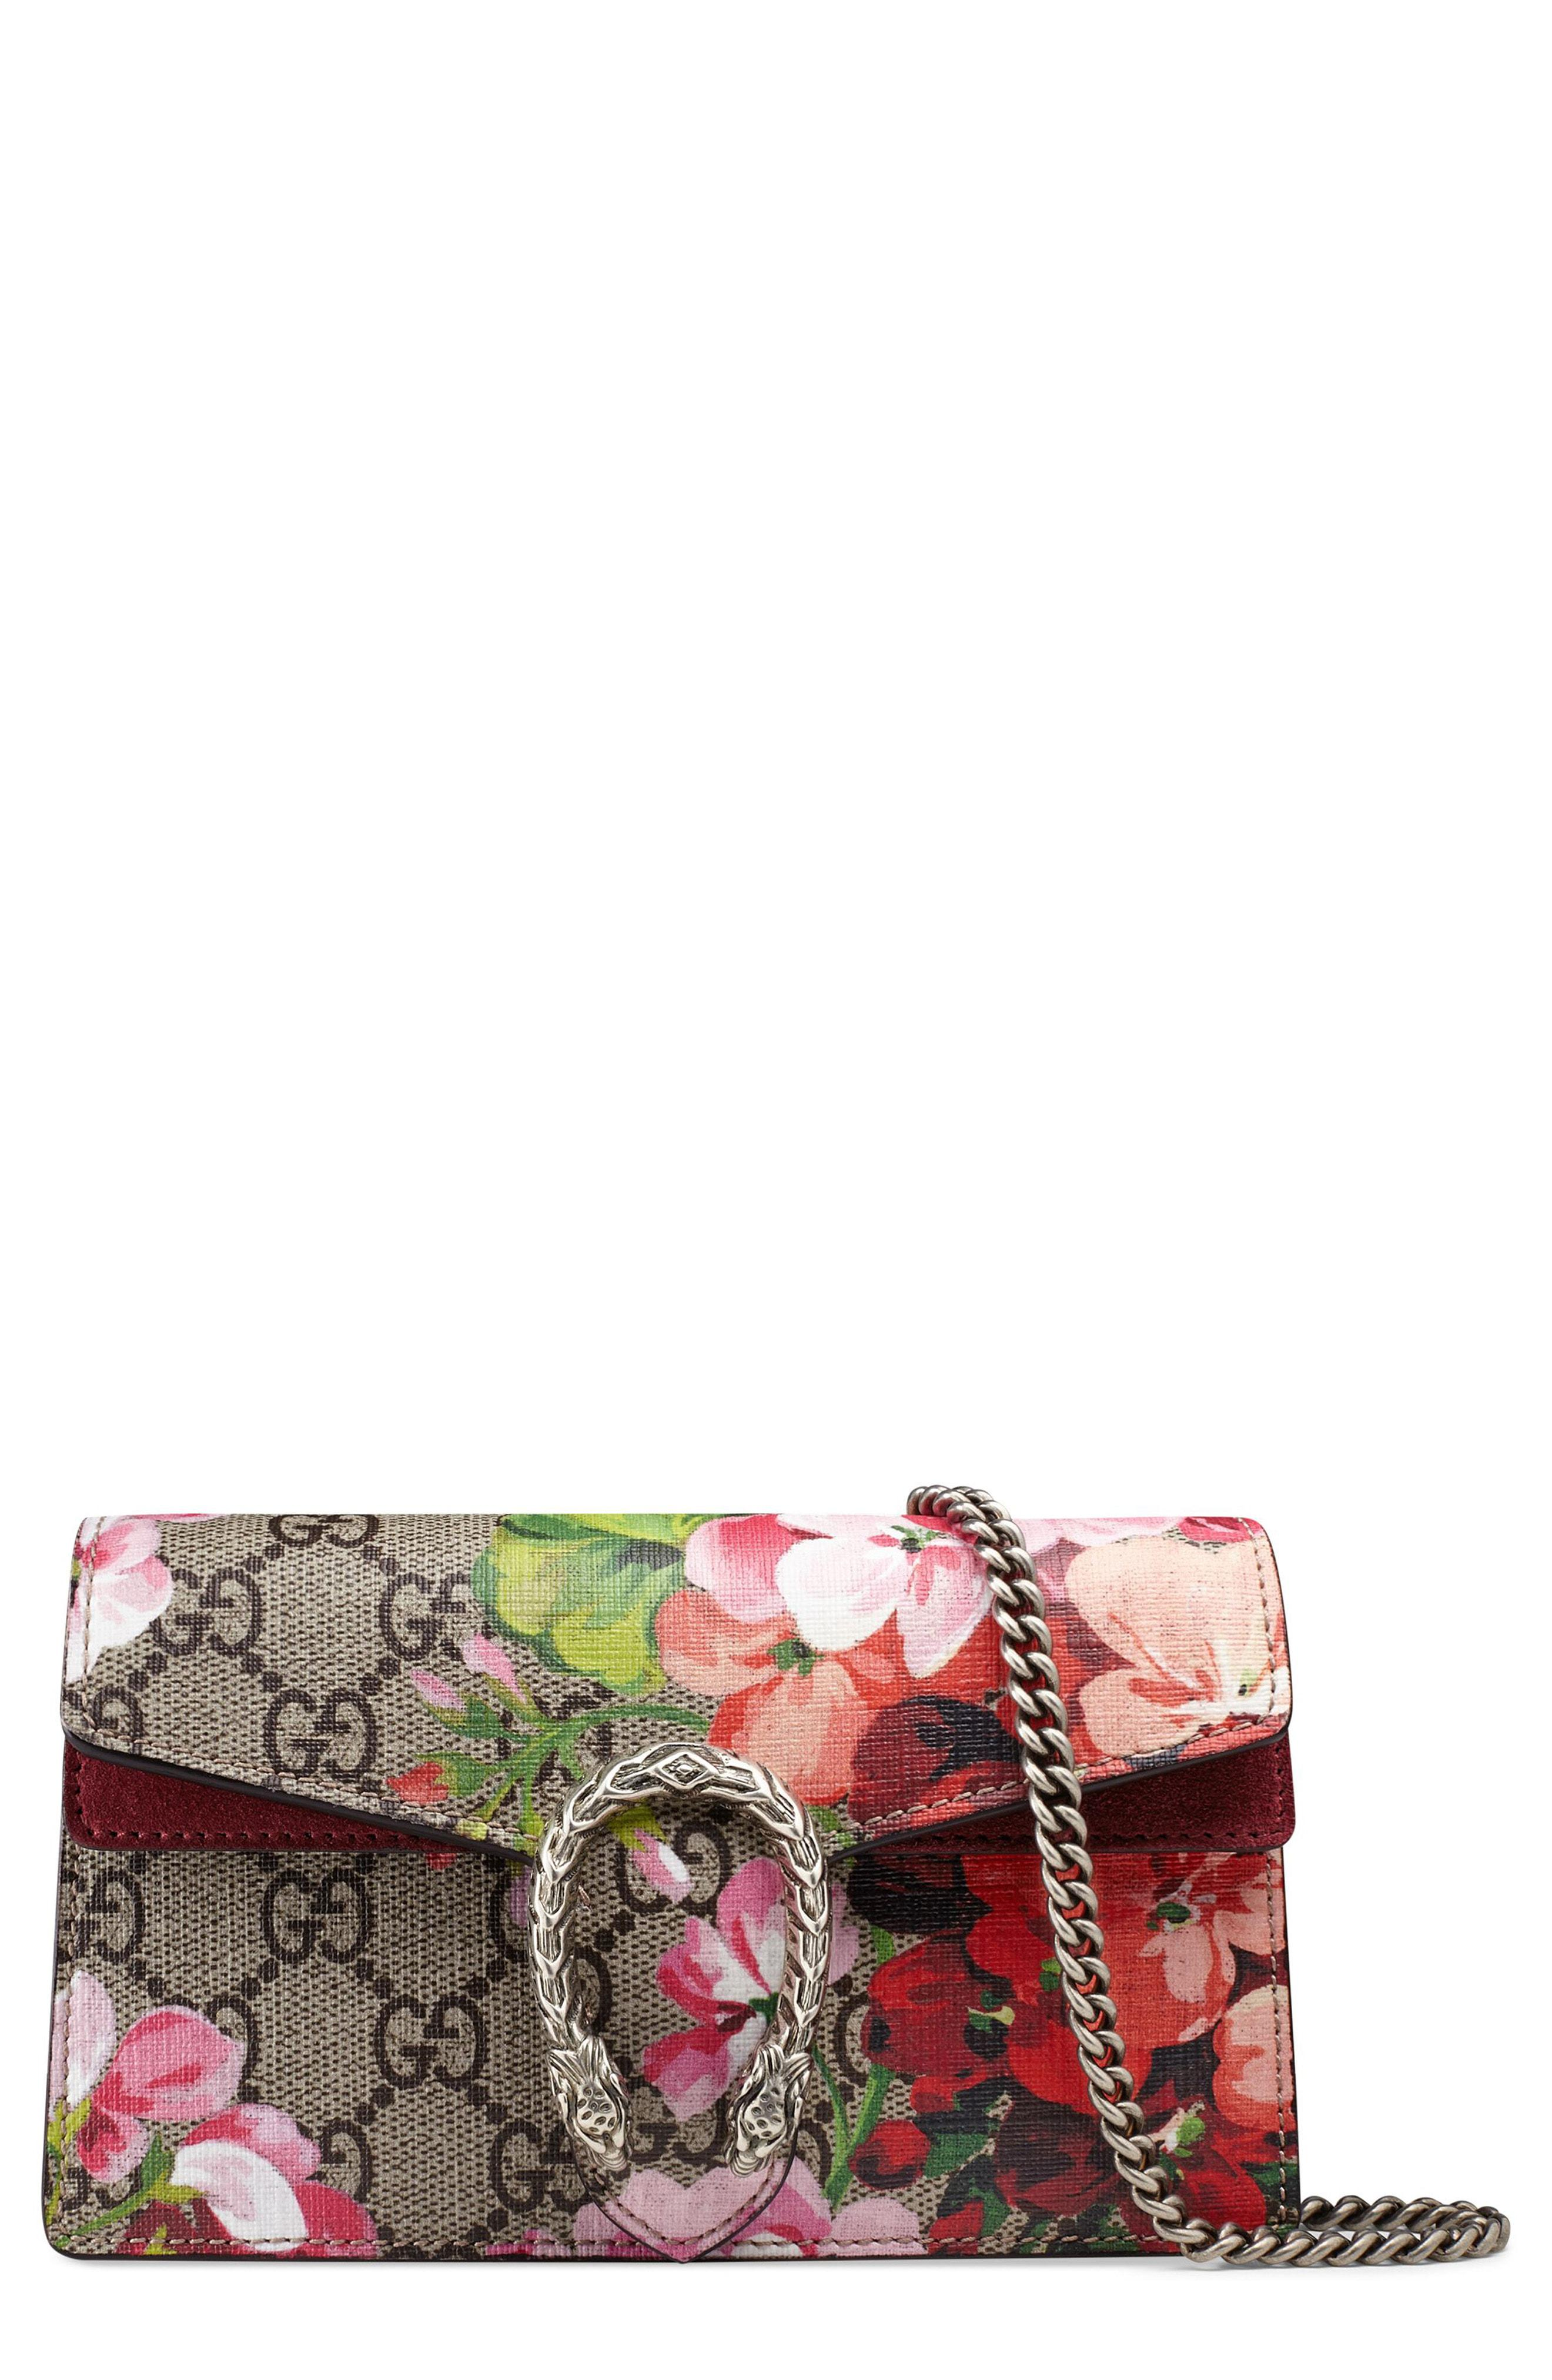 1c5a5e70207d8 Gucci. Women s Dionysus GG Blooms Super Mini Bag